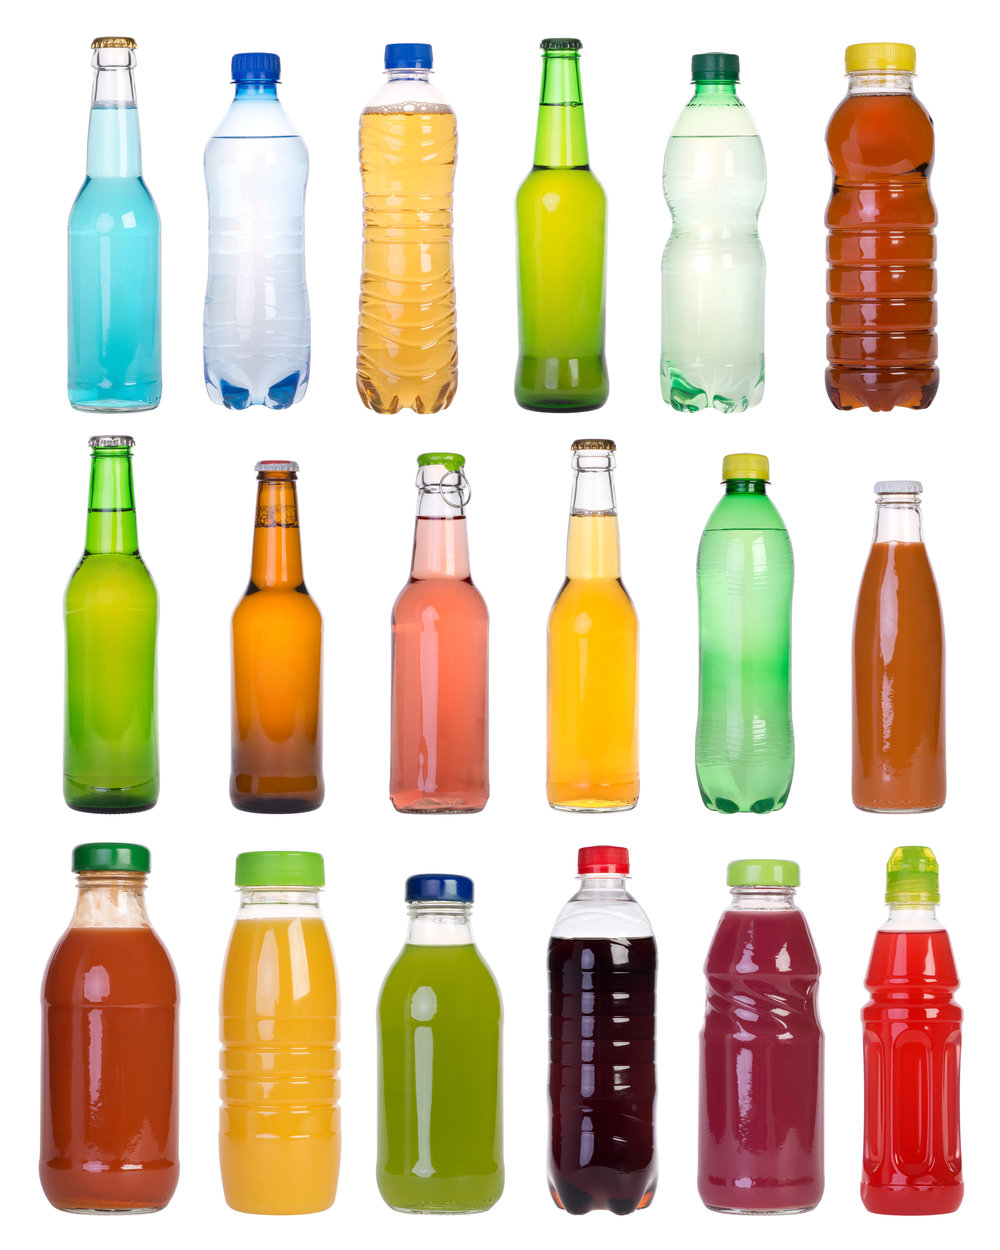 Beverage Containers / photka, Shutterstock